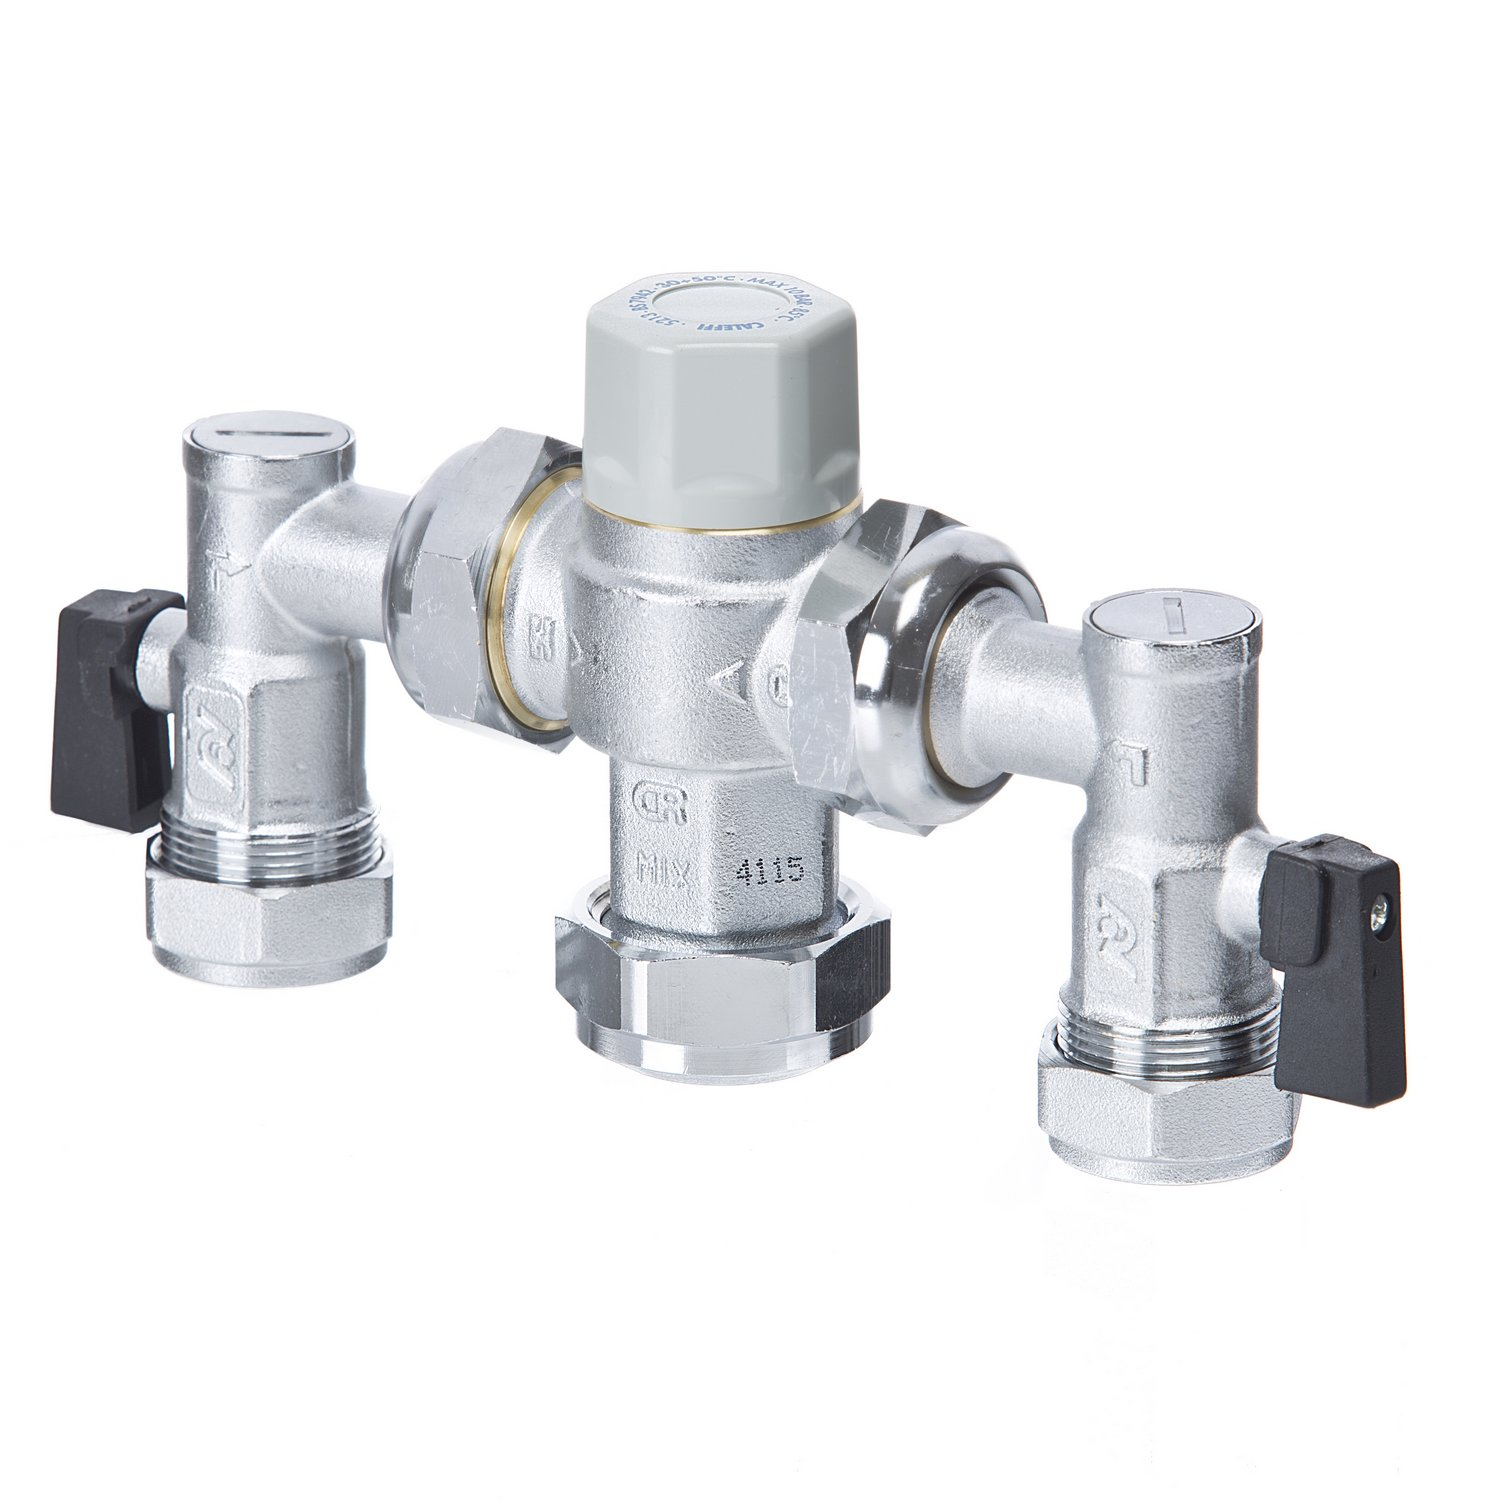 https://www.mepstock.co.uk/admin/images/MERCHANT MIXING VALVE INC MX VALVES - ART 5213.jpg